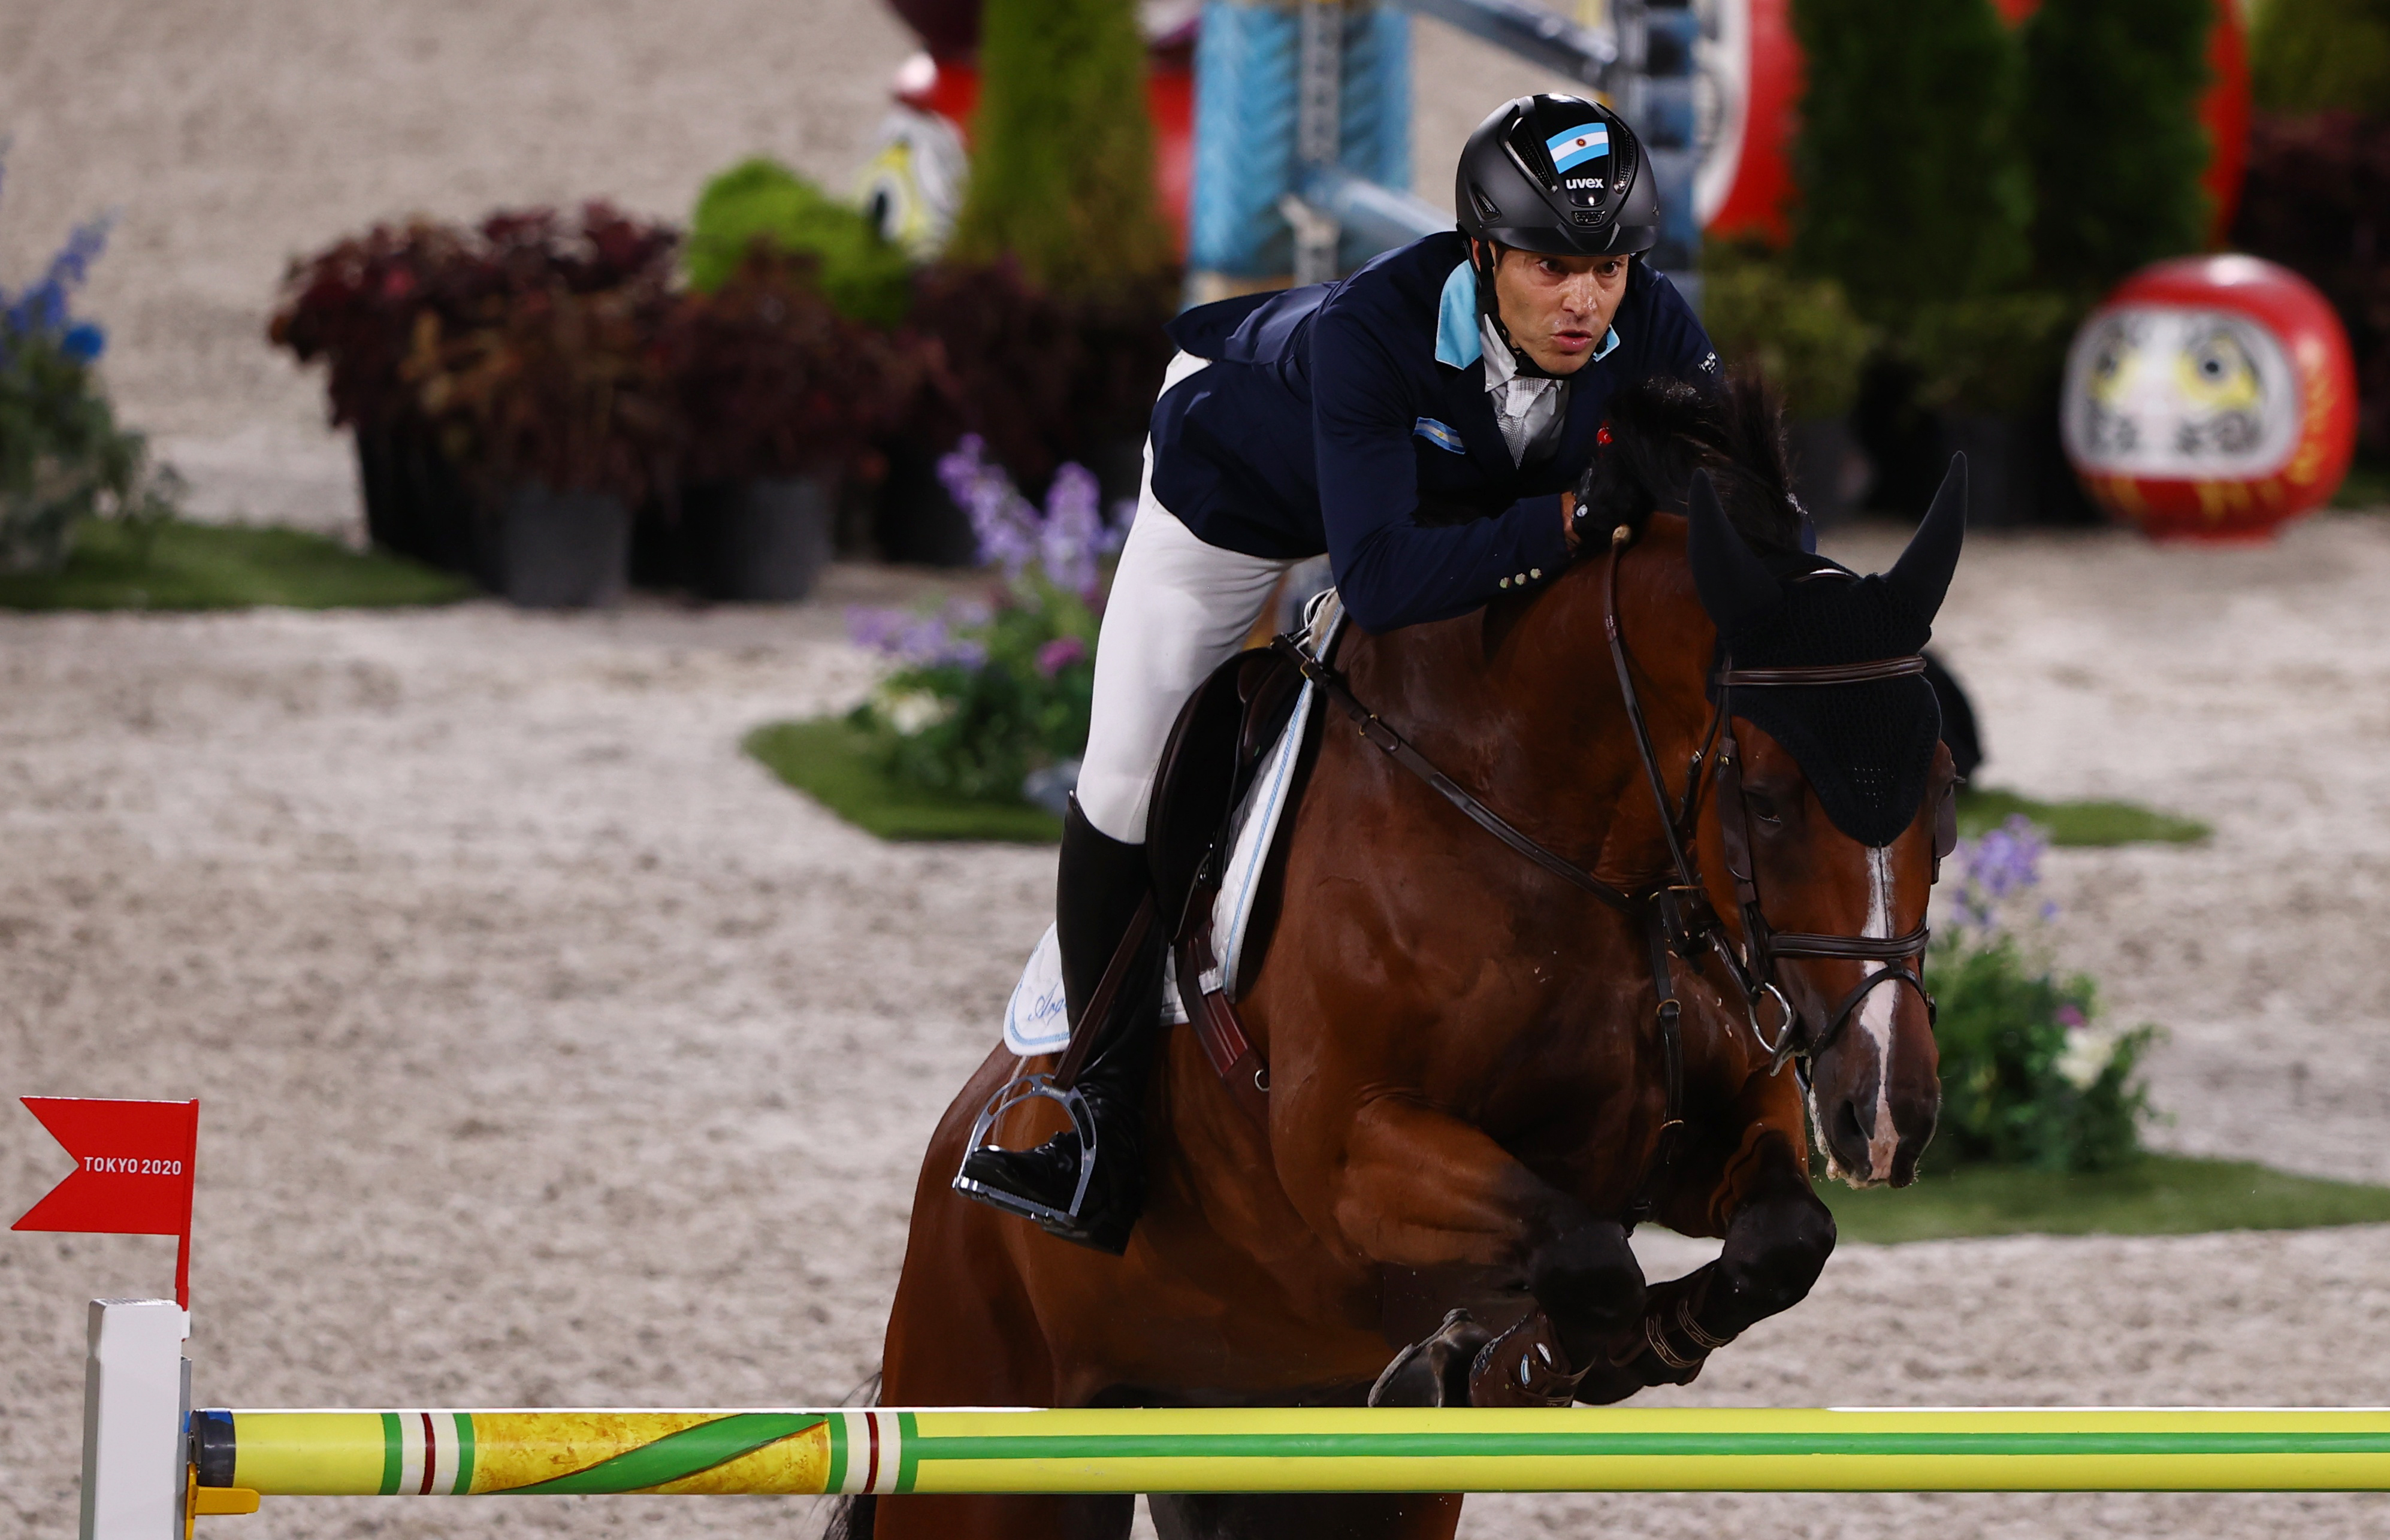 Tokyo 2020 Olympics - Equestrian - Jumping - Individual - Qualification - Equestrian Park - Tokyo, Japan - August 3, 2021. Jose Maria Larocca of Argentina on his horse Finn Lente competes. REUTERS/Hamad I Mohammed